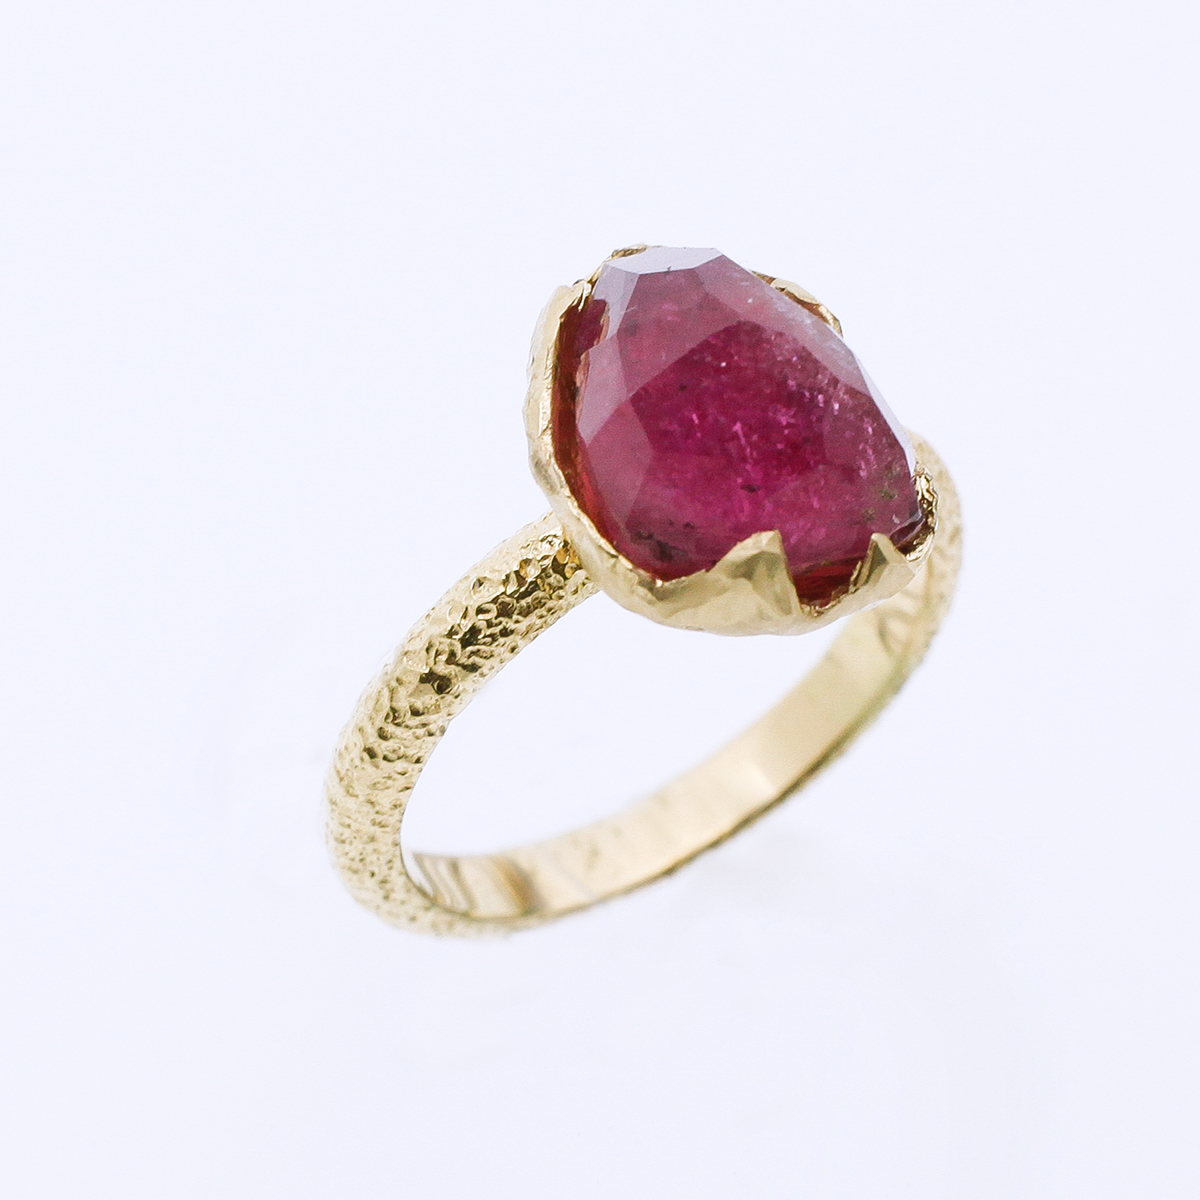 Yellow gold engagement ring with a pink tourmaline.